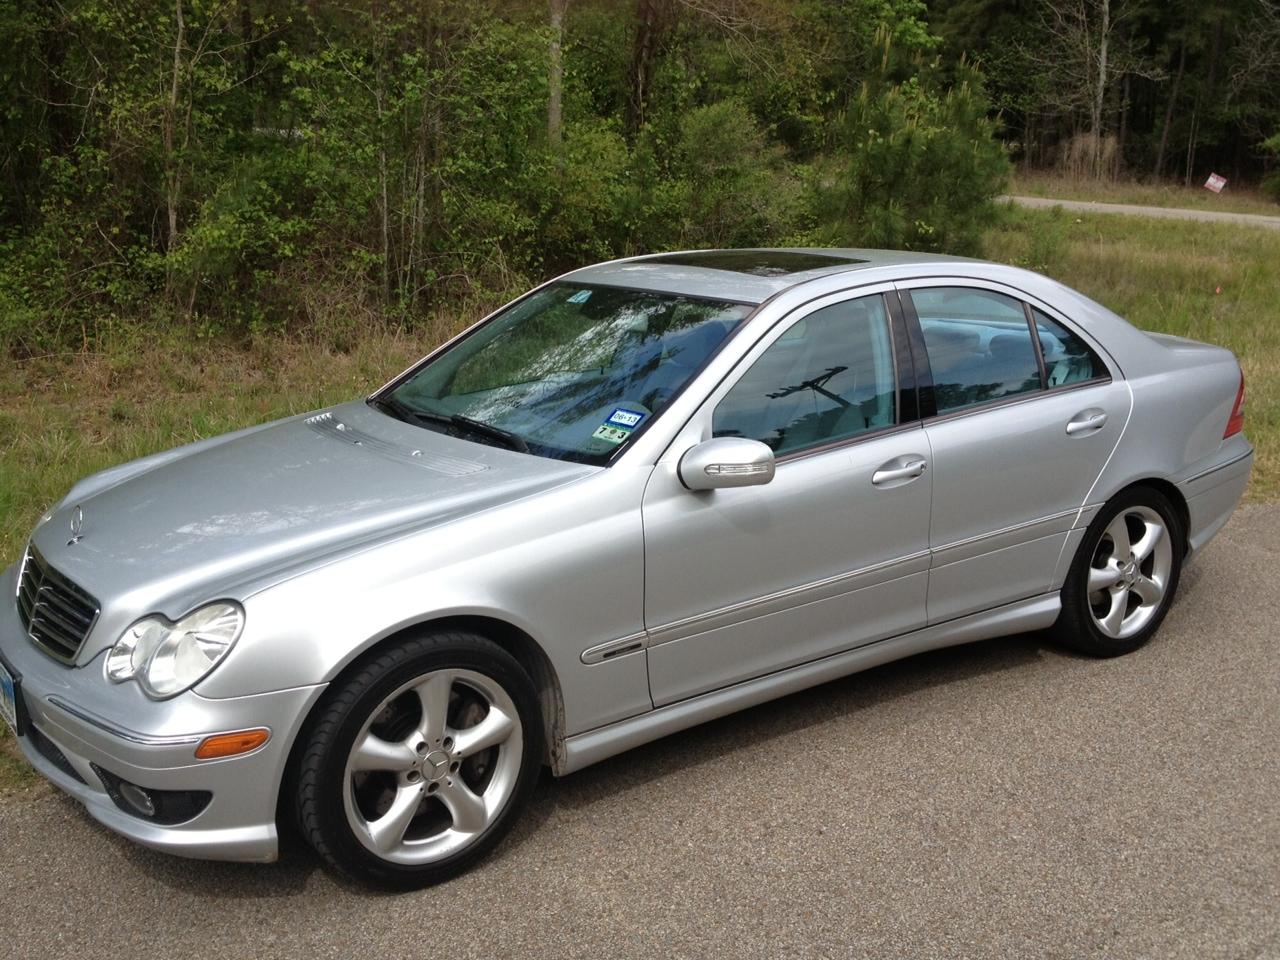 2004 mercedes benz c300 price for Mercedes benz c class 2006 price